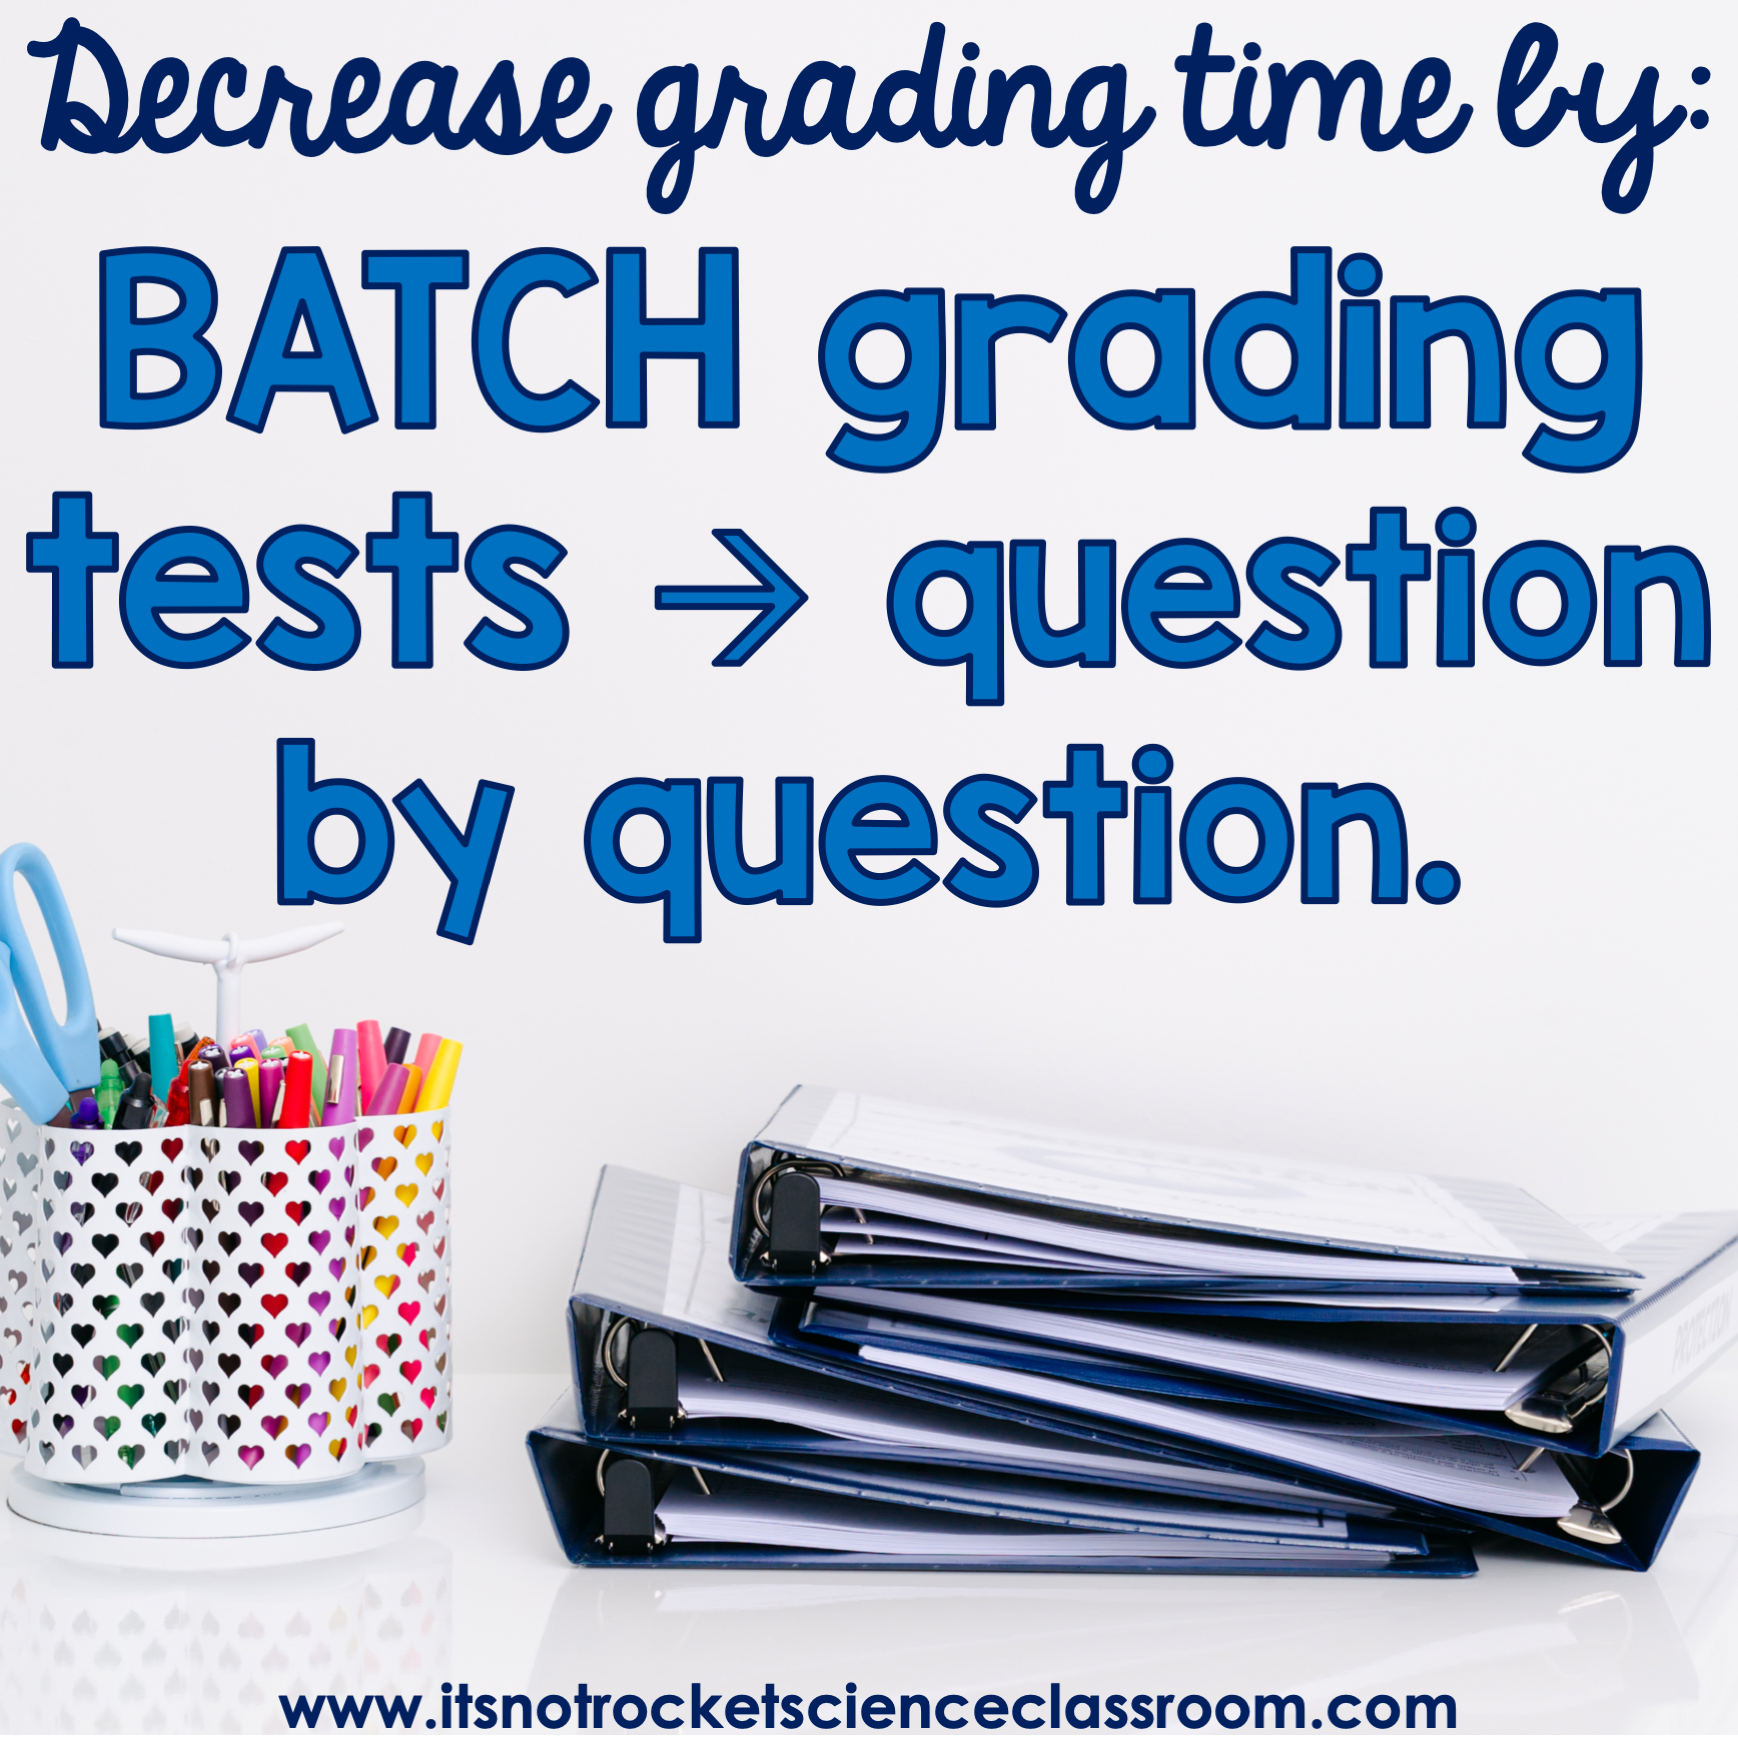 Tip #4 to decrease grading time: batch grading tests question by question.